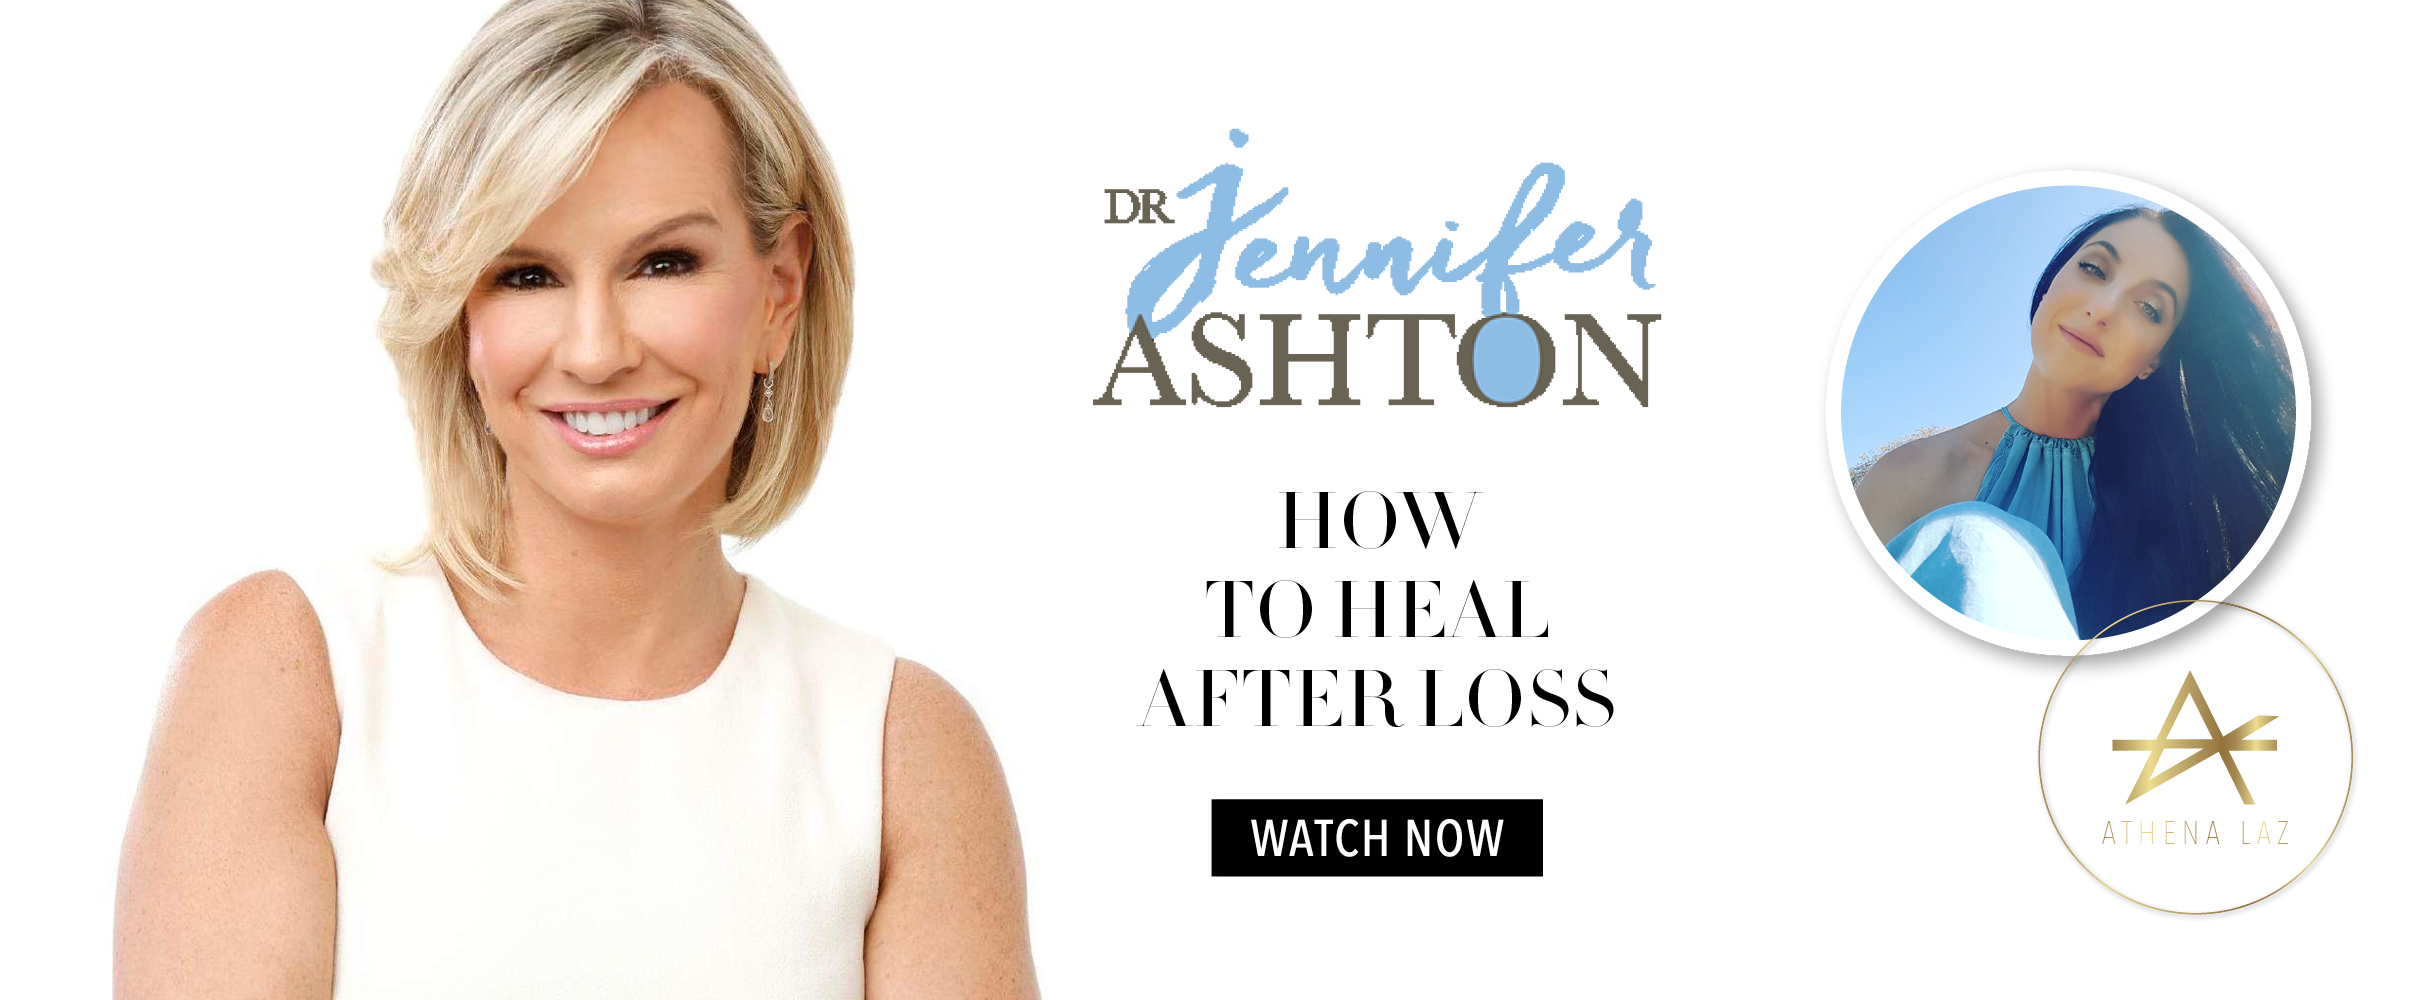 Athena Laz interviews Dr Jennifer Ashton ABC News Correspondent